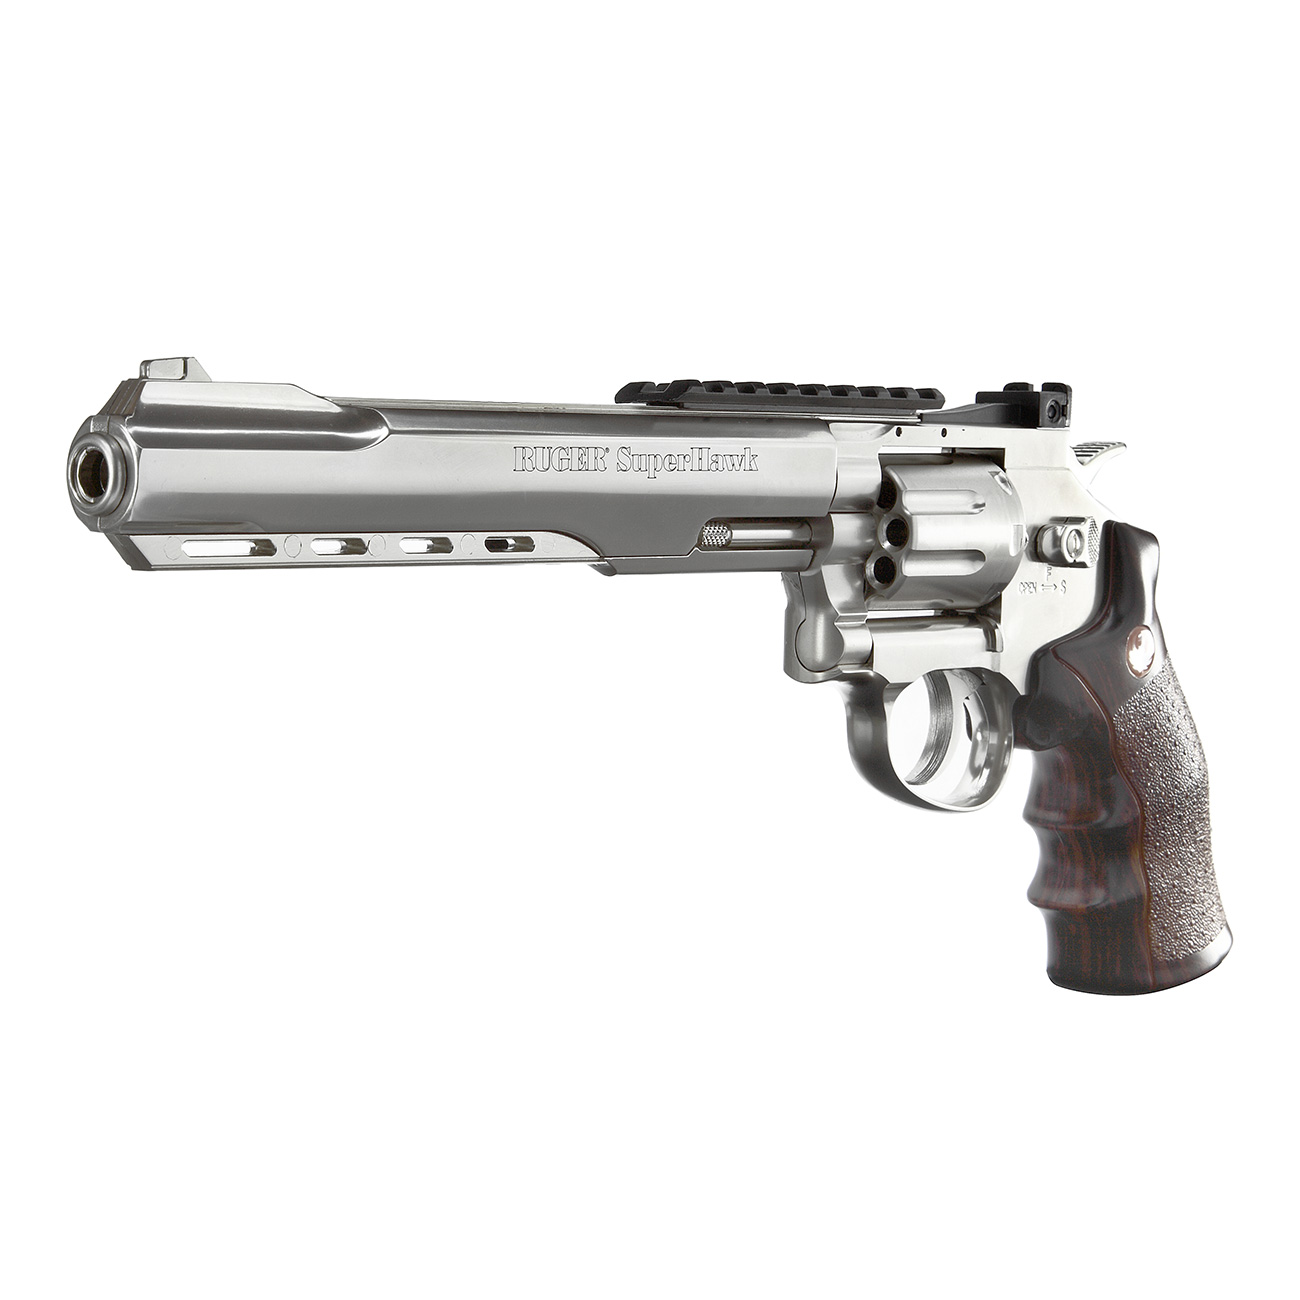 Ruger Super Hawk 8 Zoll 6mm BB CO2 Revolver chrom 0